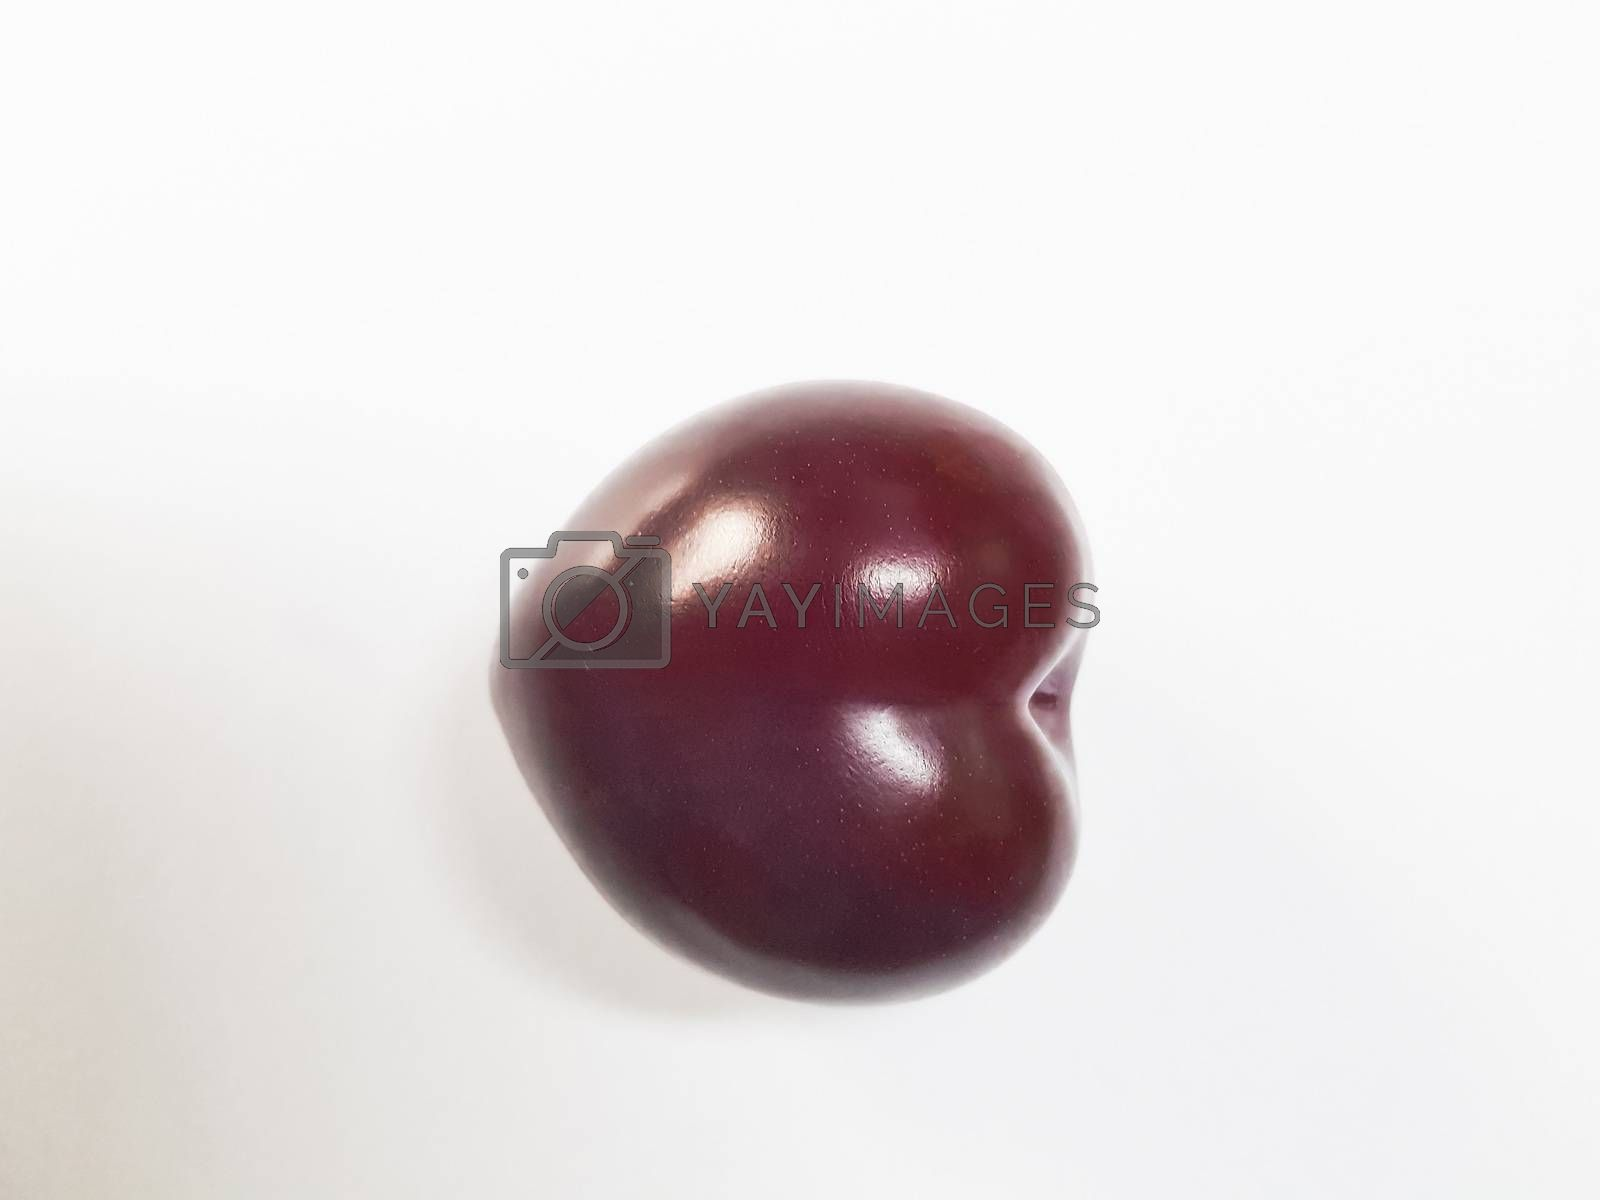 Isolated cherry. Sweet cherry fruits in the shape of a heart, isolated on white background.